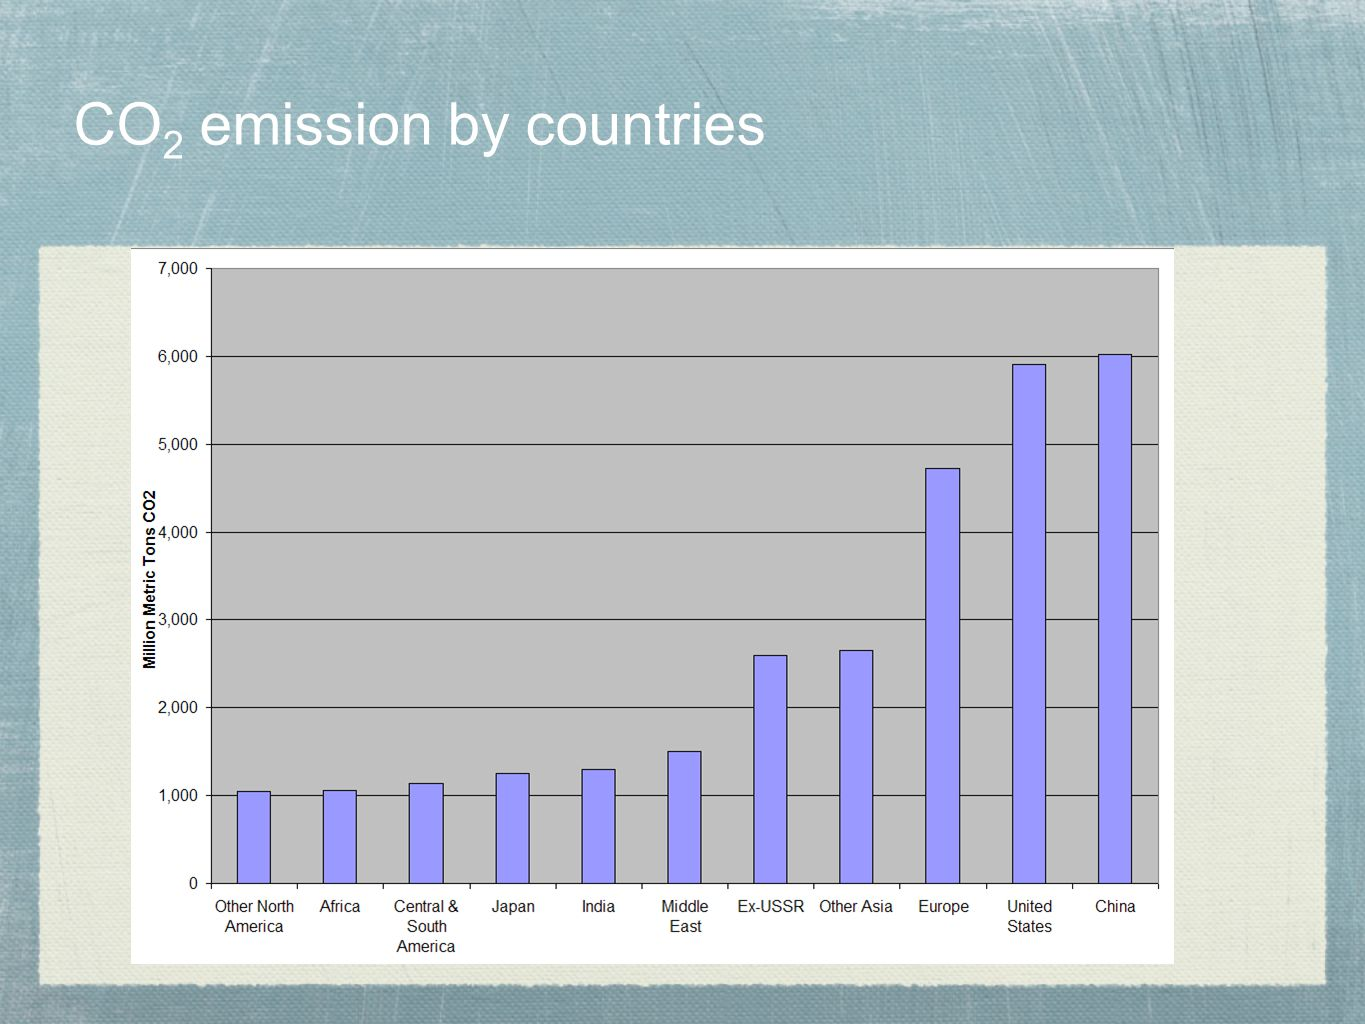 CO2 emission by countries